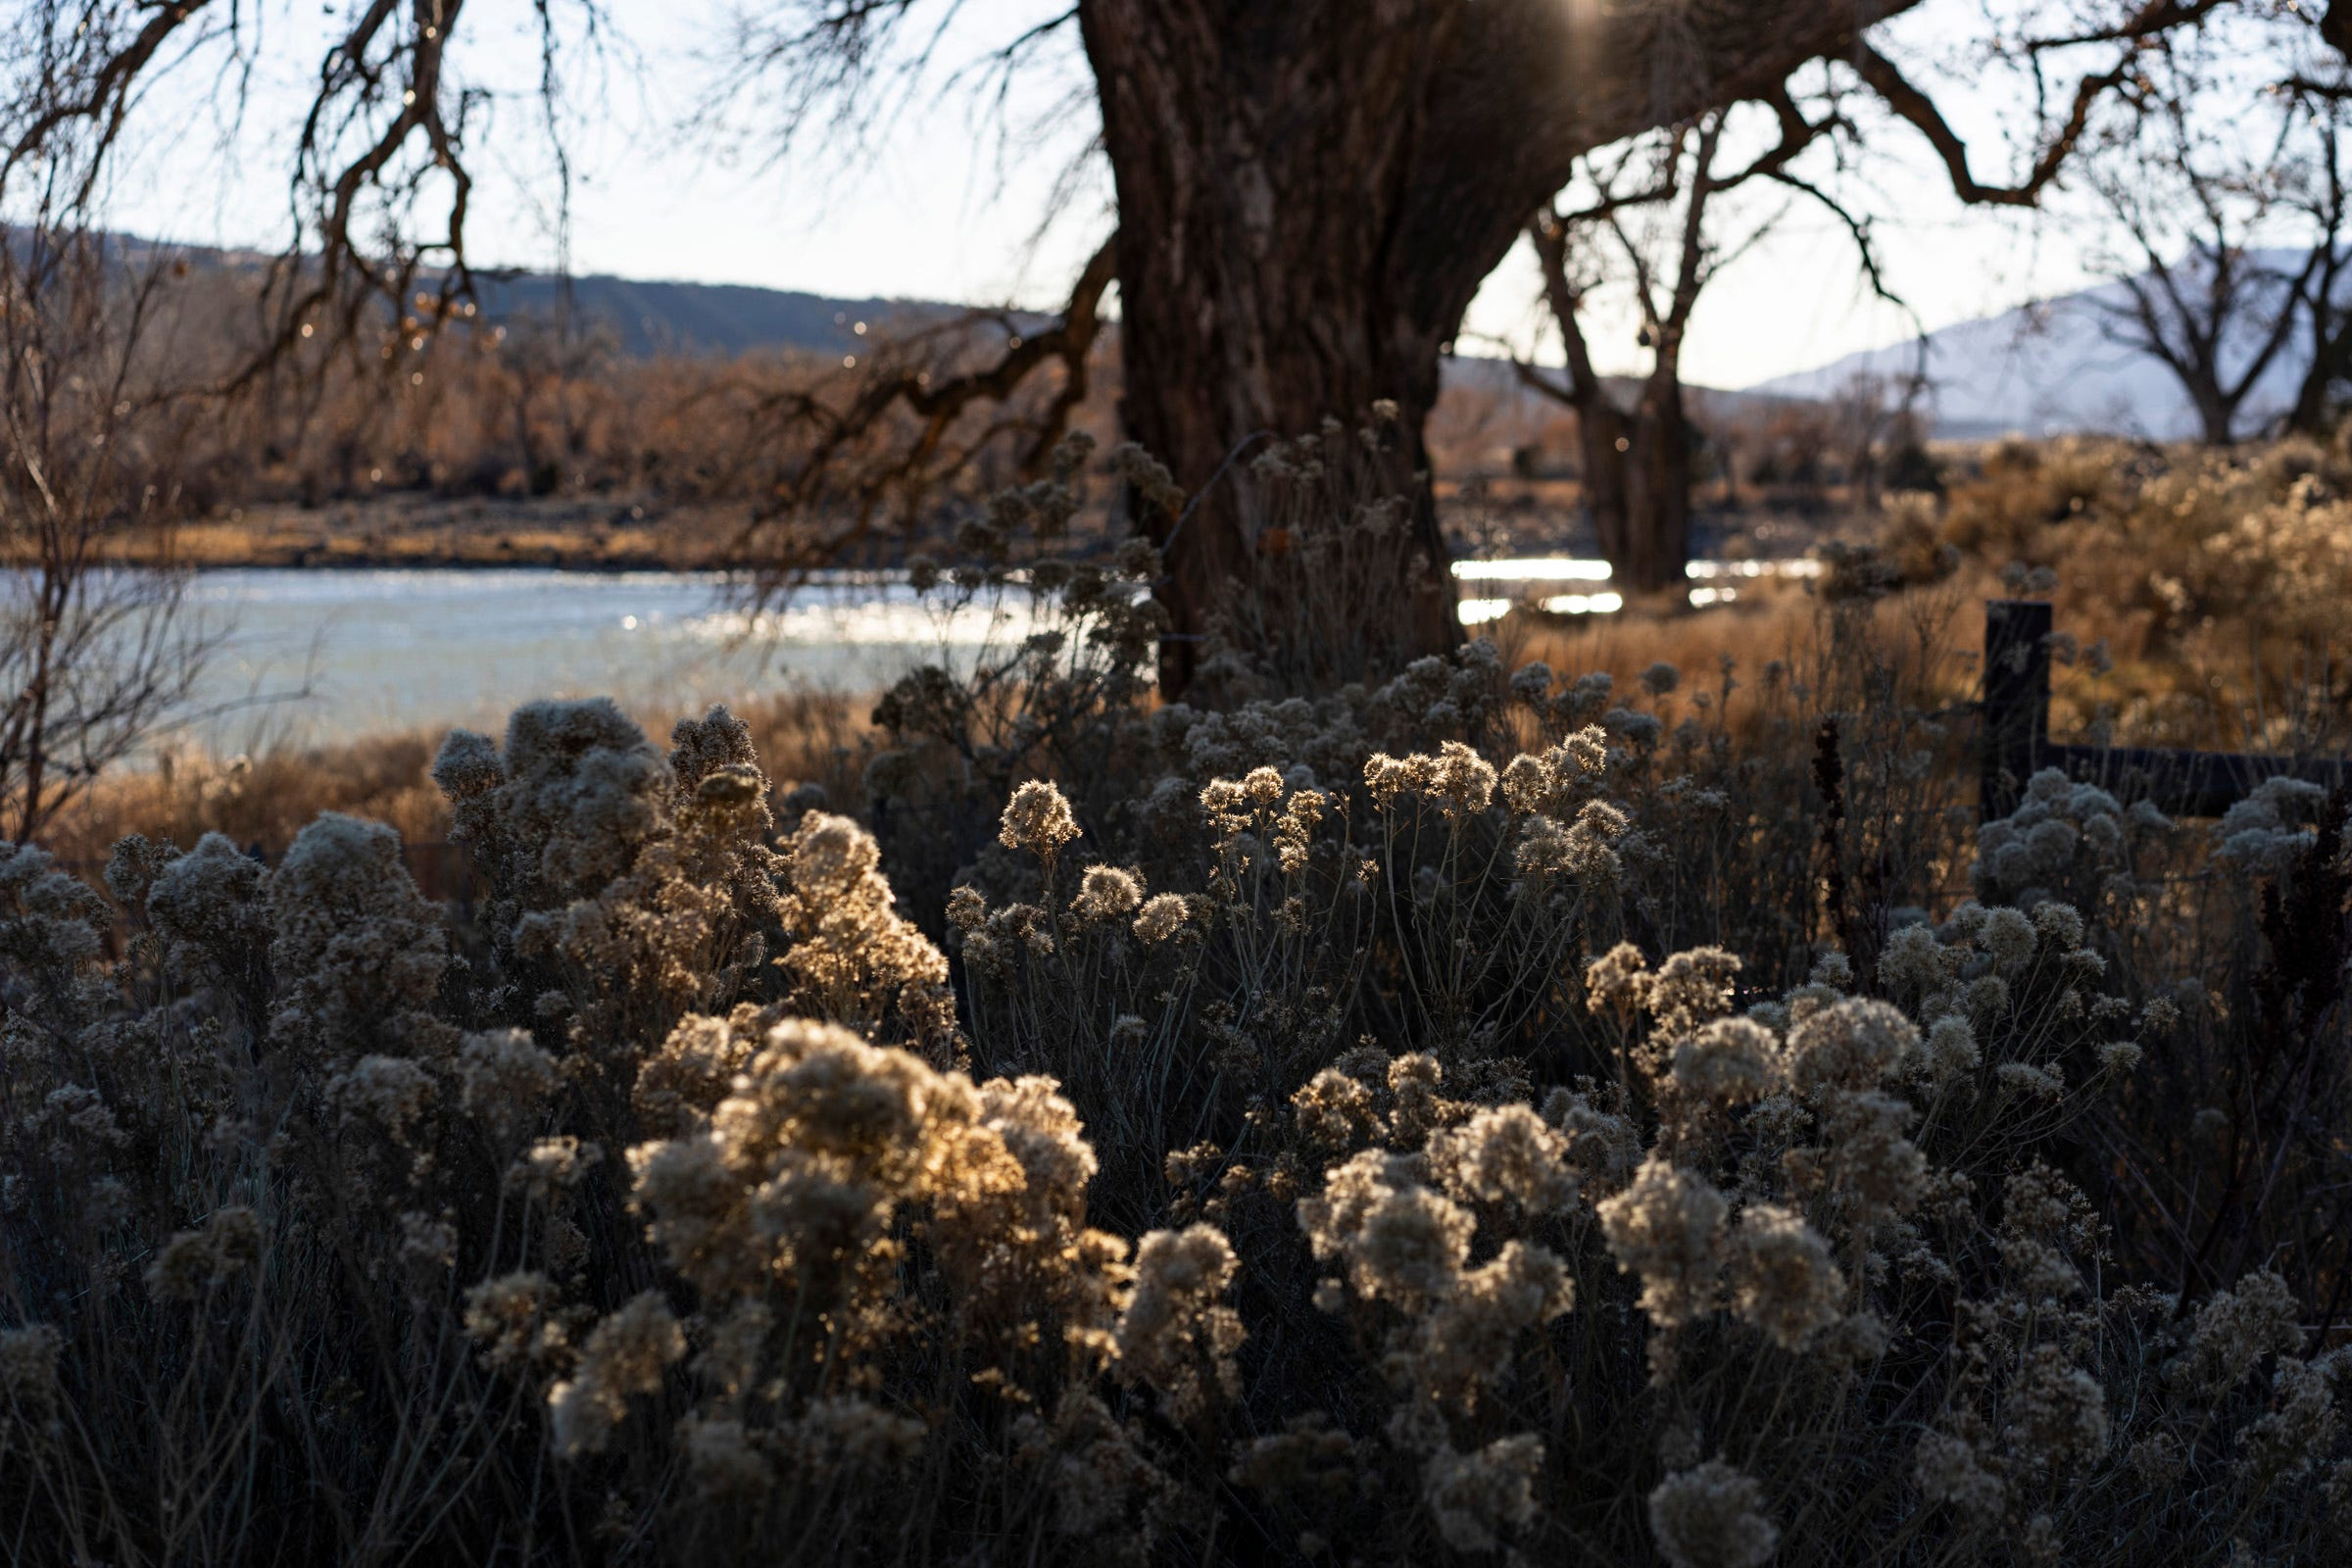 Dry brush lines the banks of the Colorado River near Rifle, Colorado. Much of the river's flow comes from western Colorado, and rising temperatures have intensified a stretch of mostly dry years.